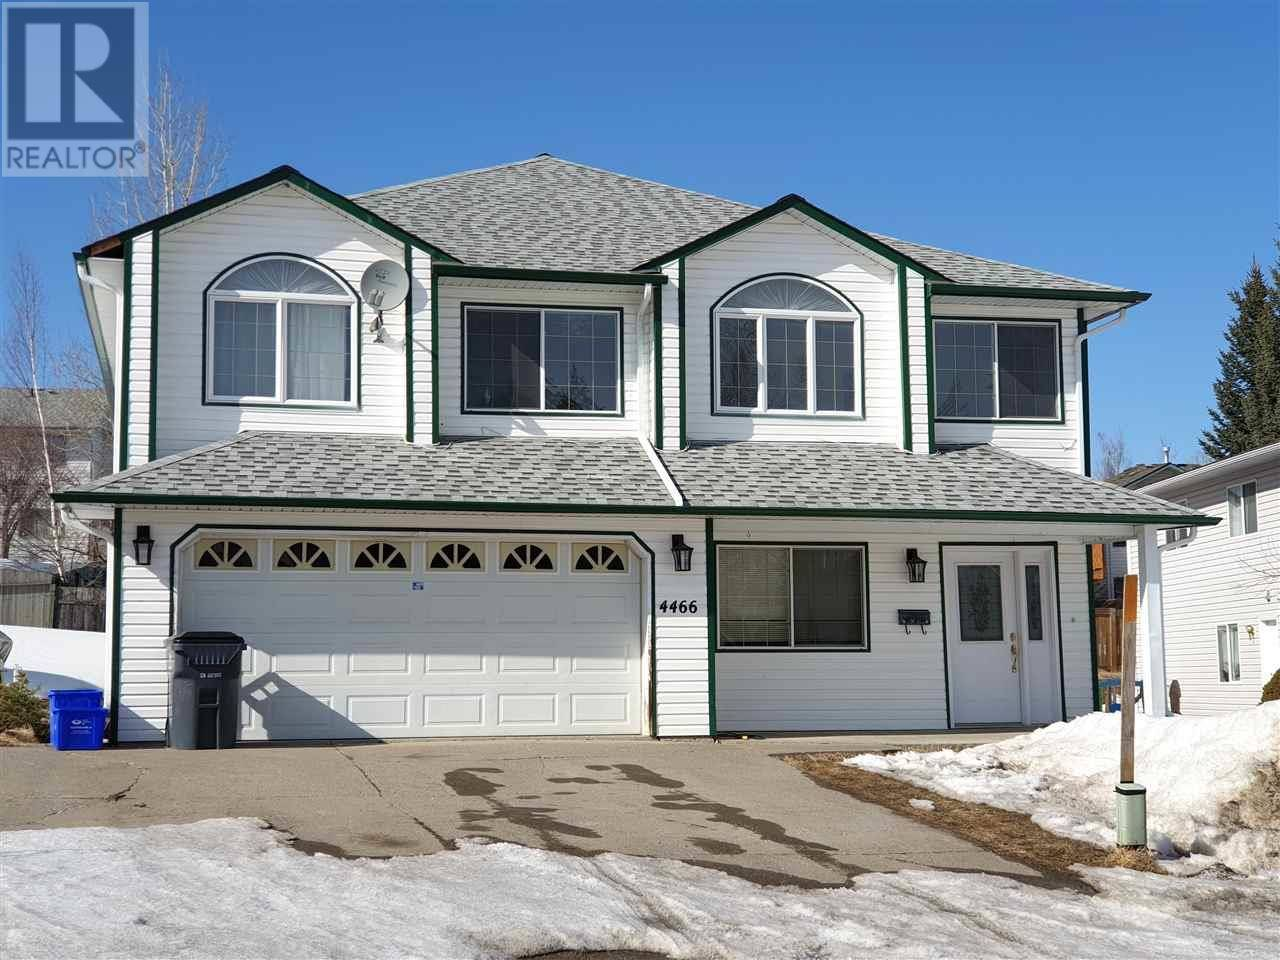 House for sale at 4466 Wheeler Rd Prince George British Columbia - MLS: R2446870